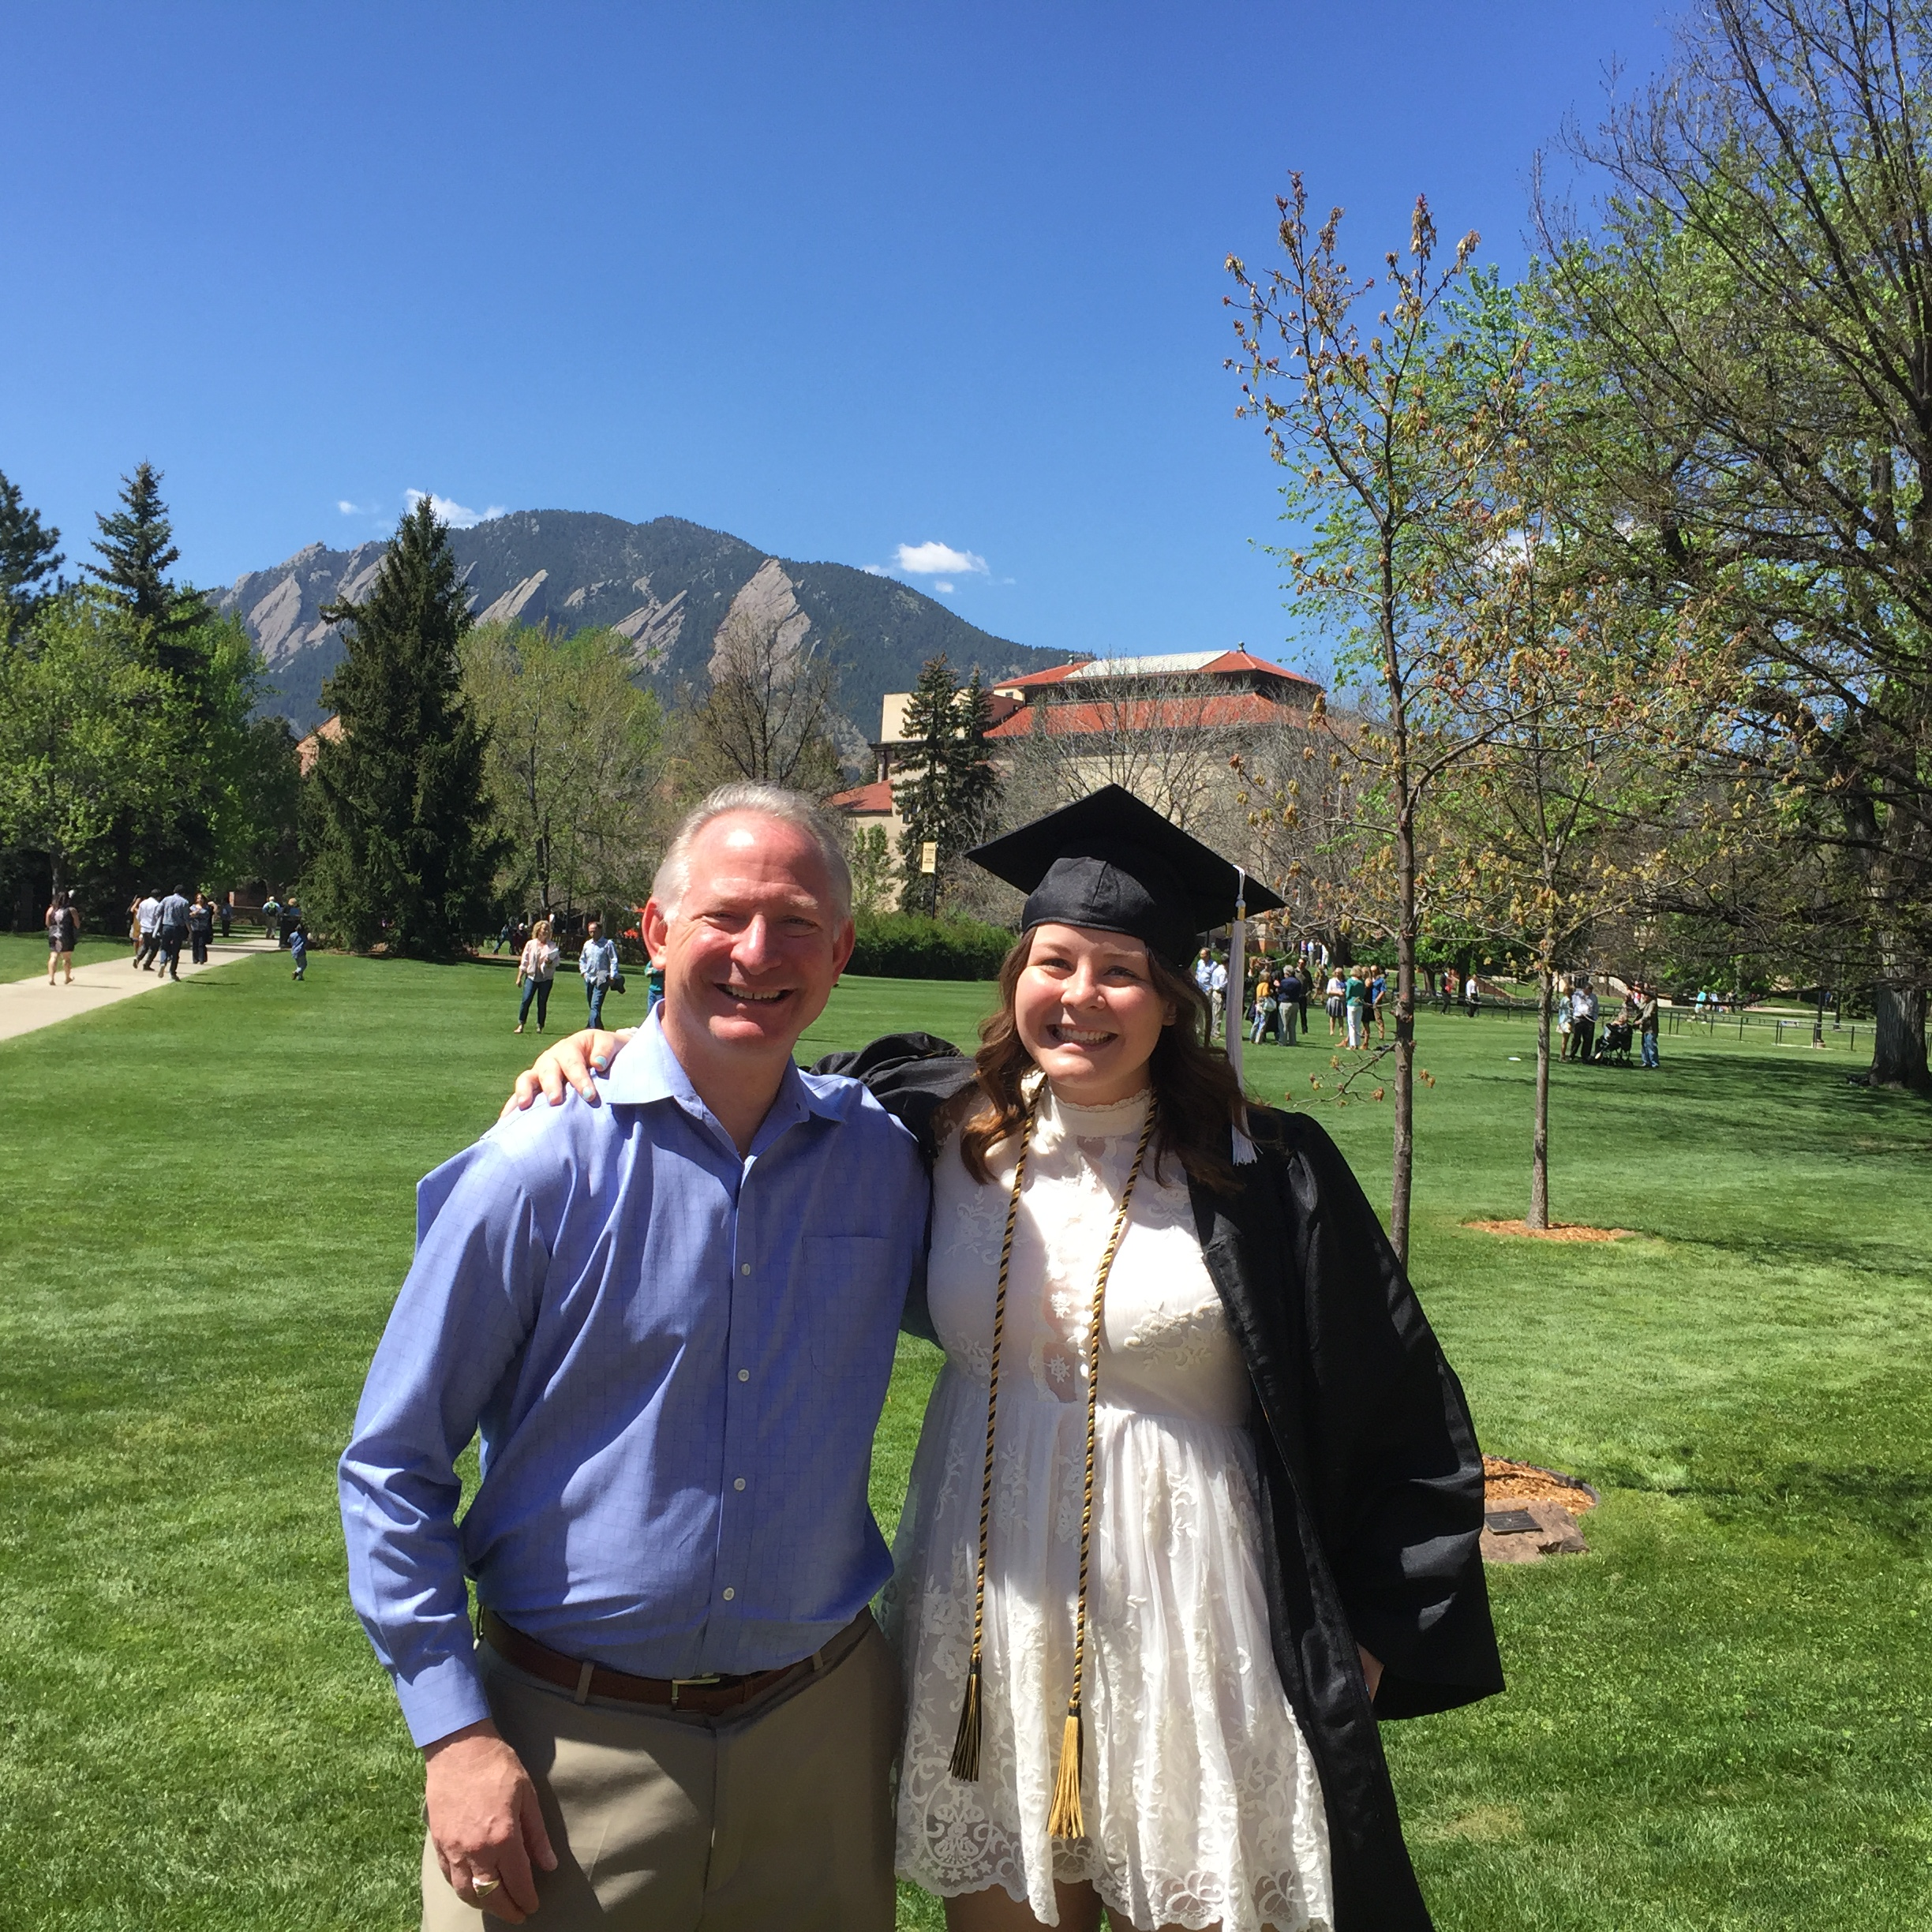 Steve with his daughter, Molly, at her graduation from the University of Colorado—Boulder